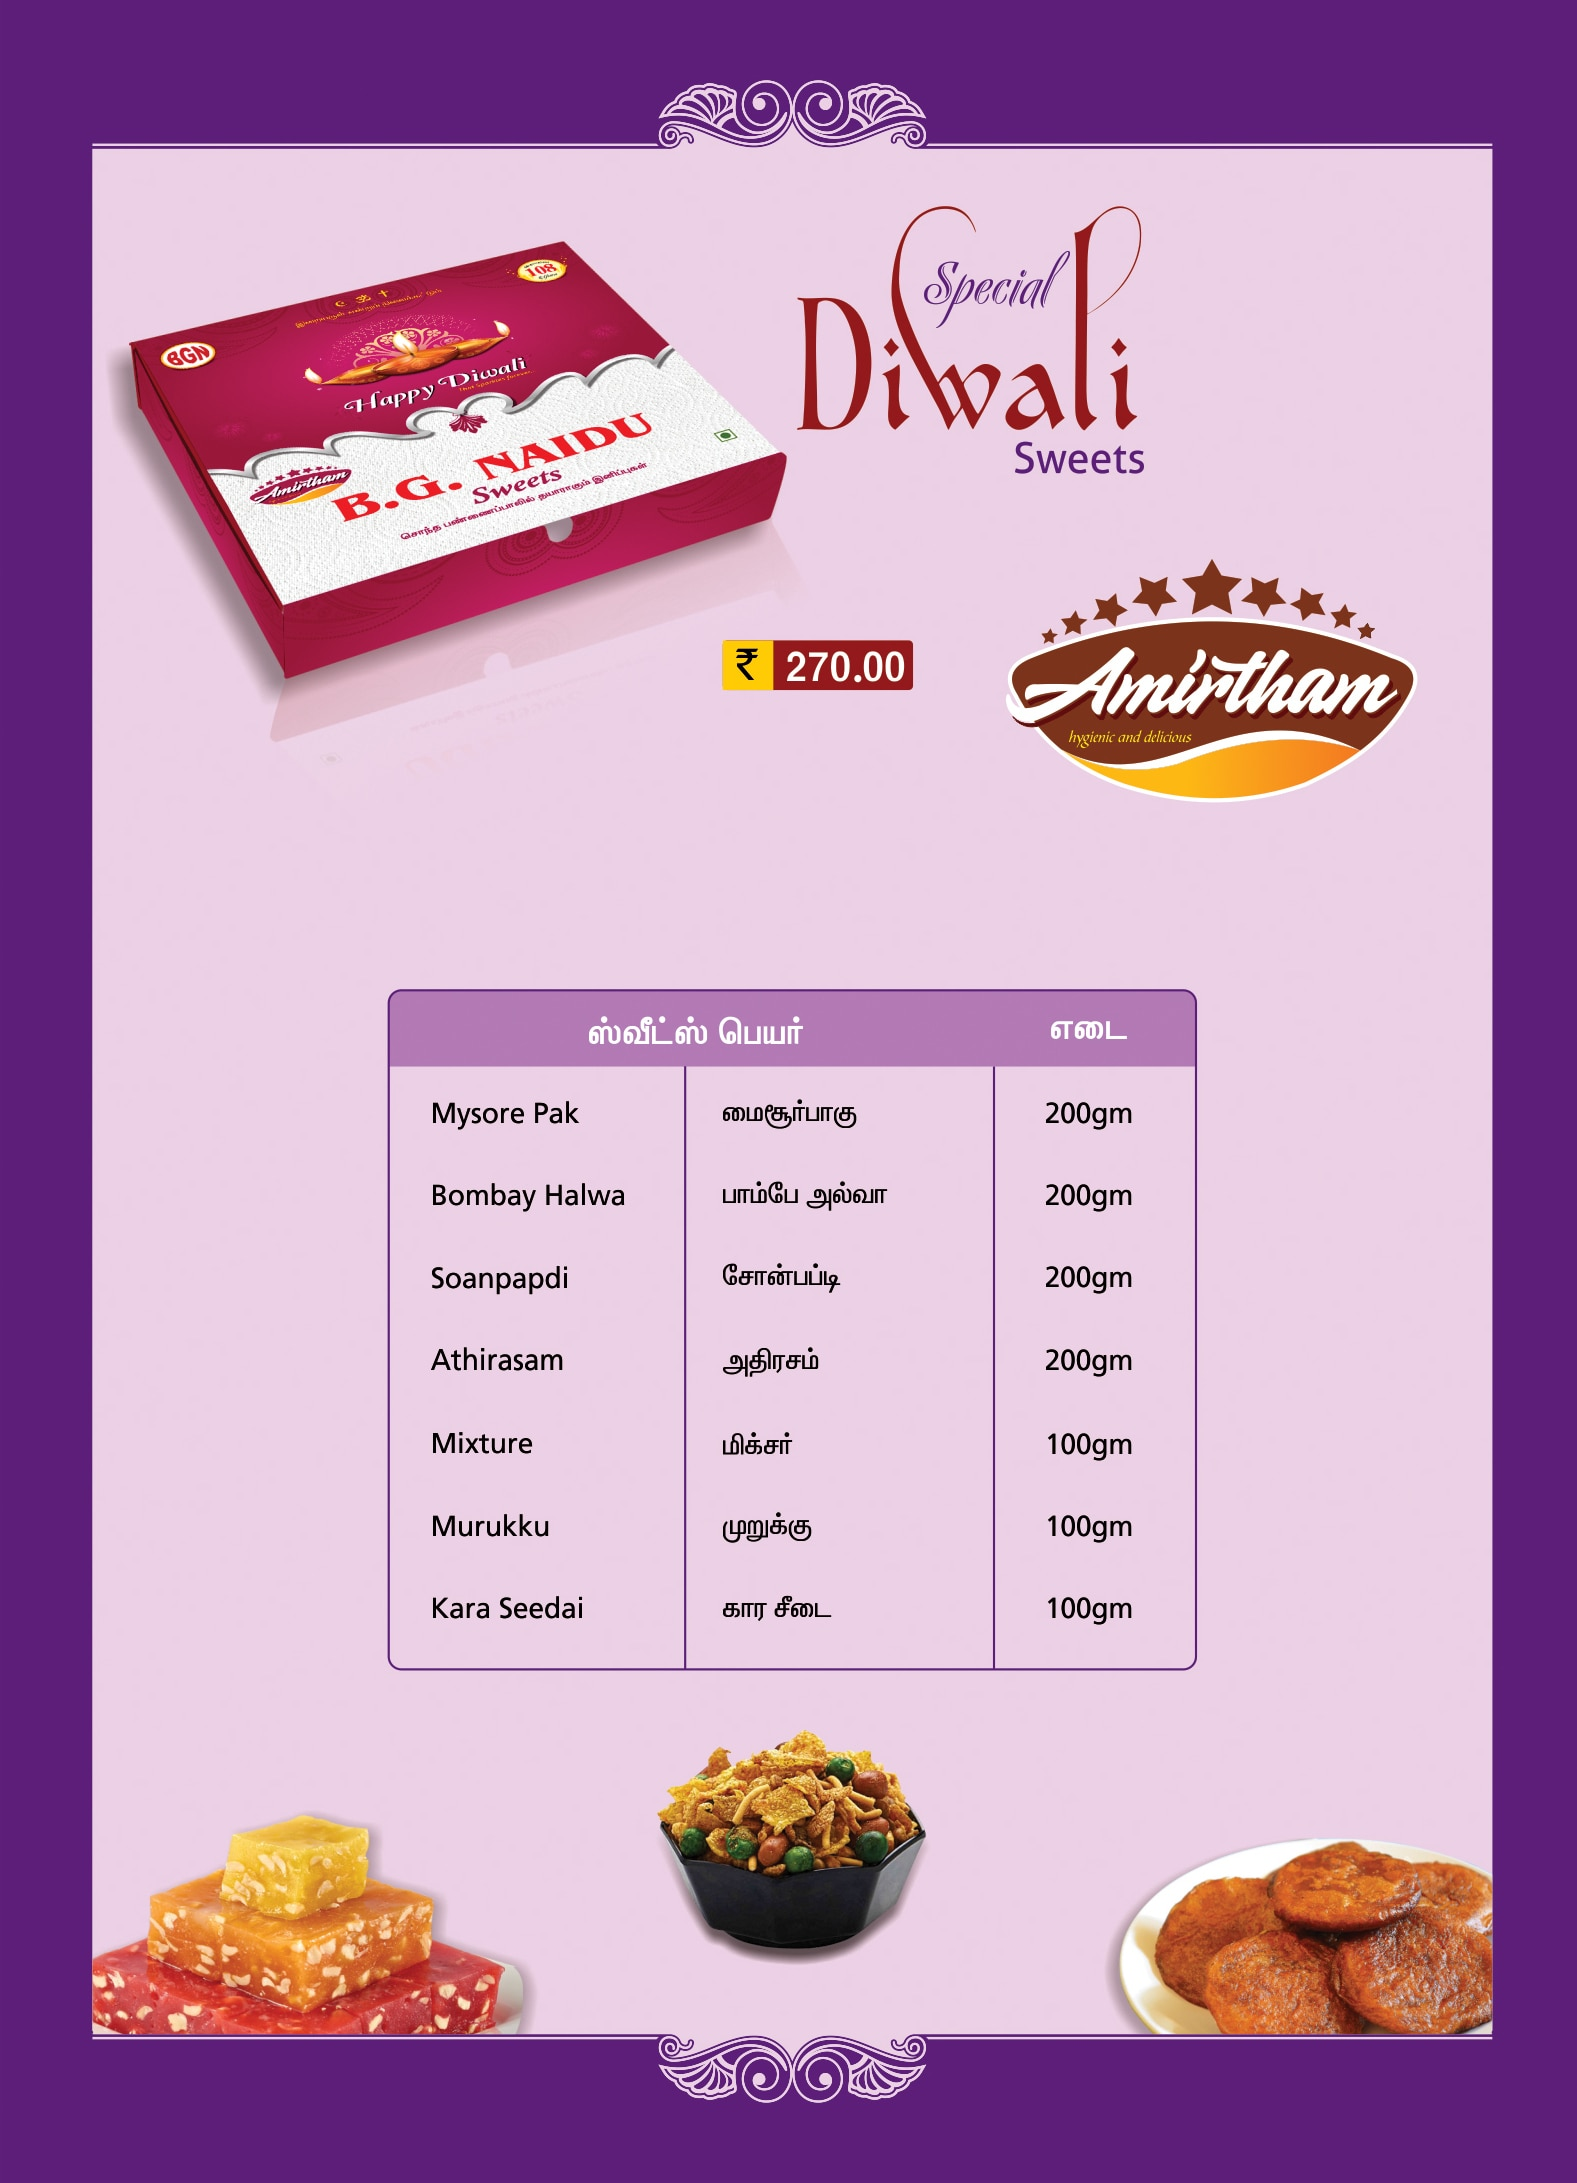 Diwali Special Gift Box Sweets in Trichy AMIRTHAM Gift Box